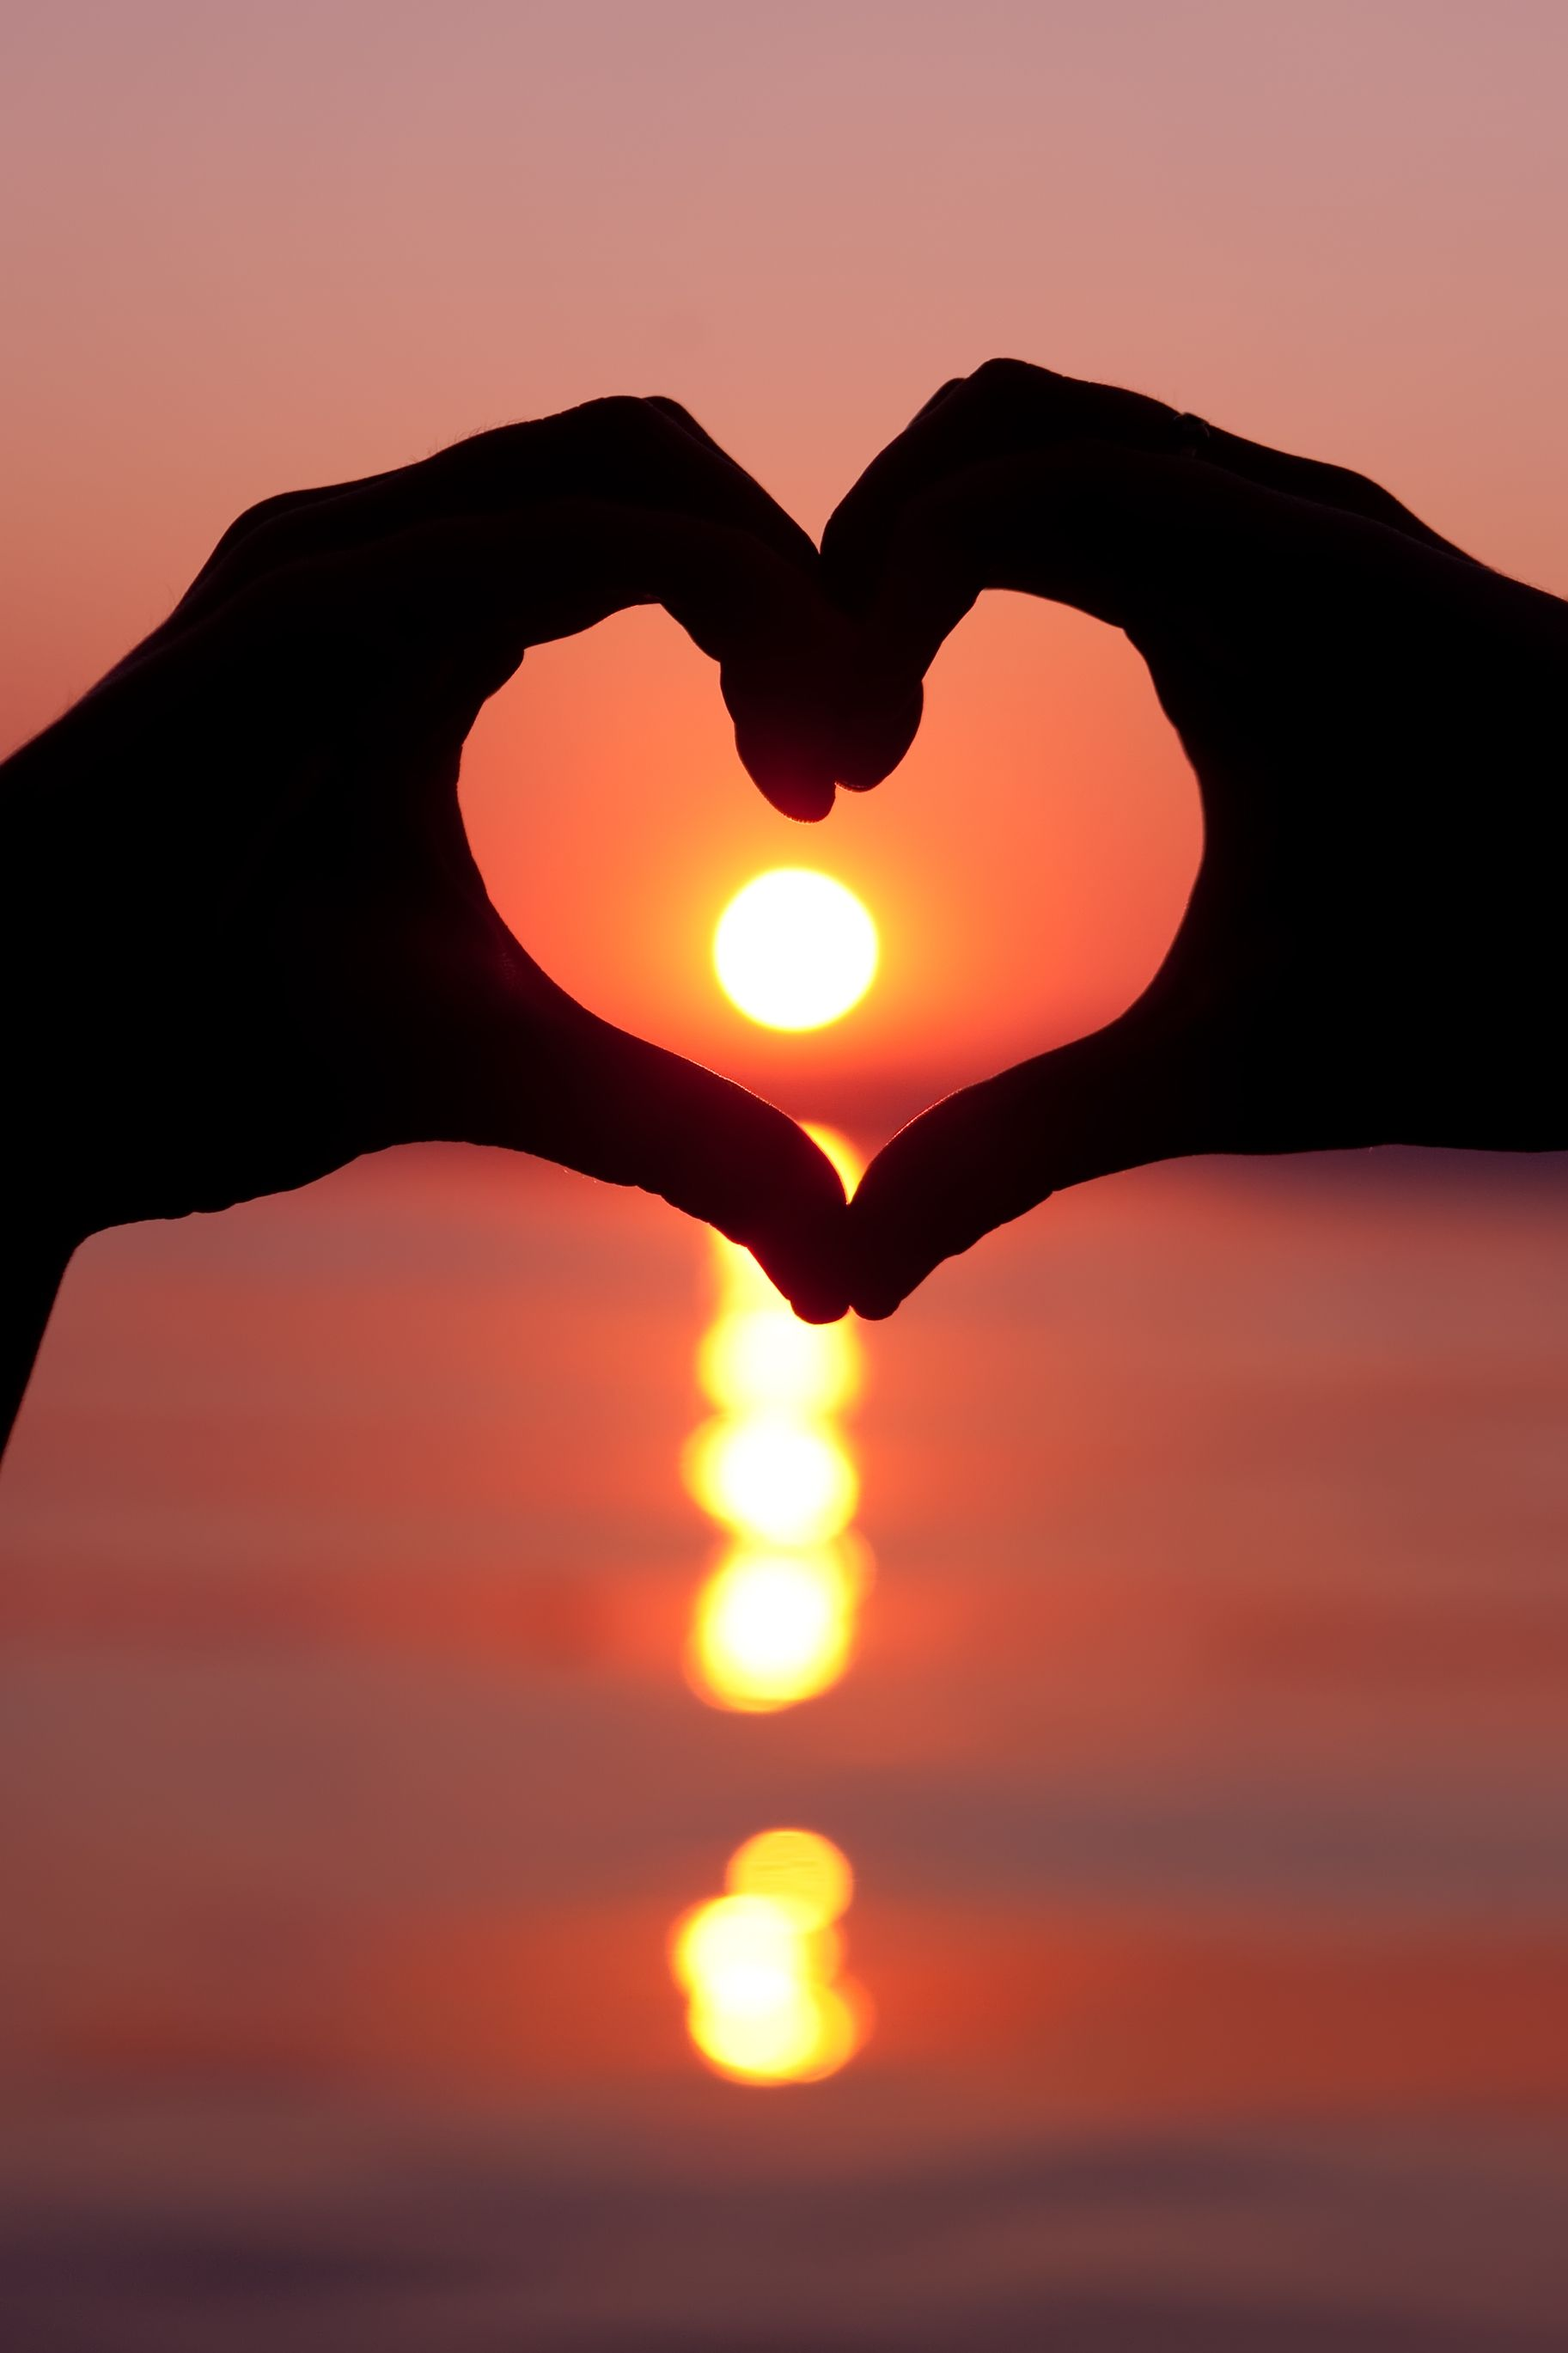 Hearts In Nature Wow Beautiful Sunset Heart Beautiful Heart Images Love Wallpapers Romantic Love Wallpaper